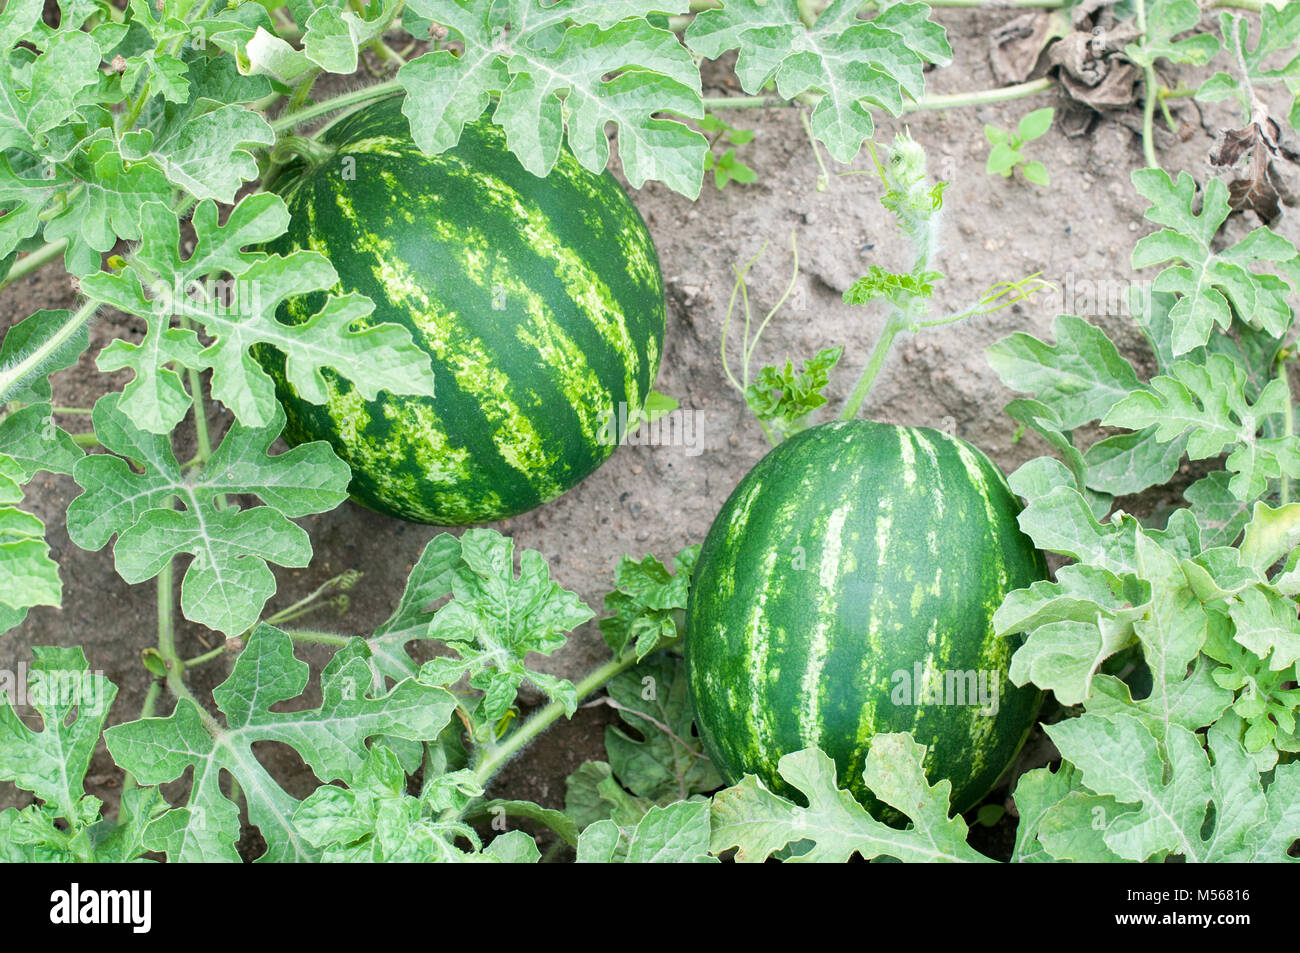 Watermelon Images Tree